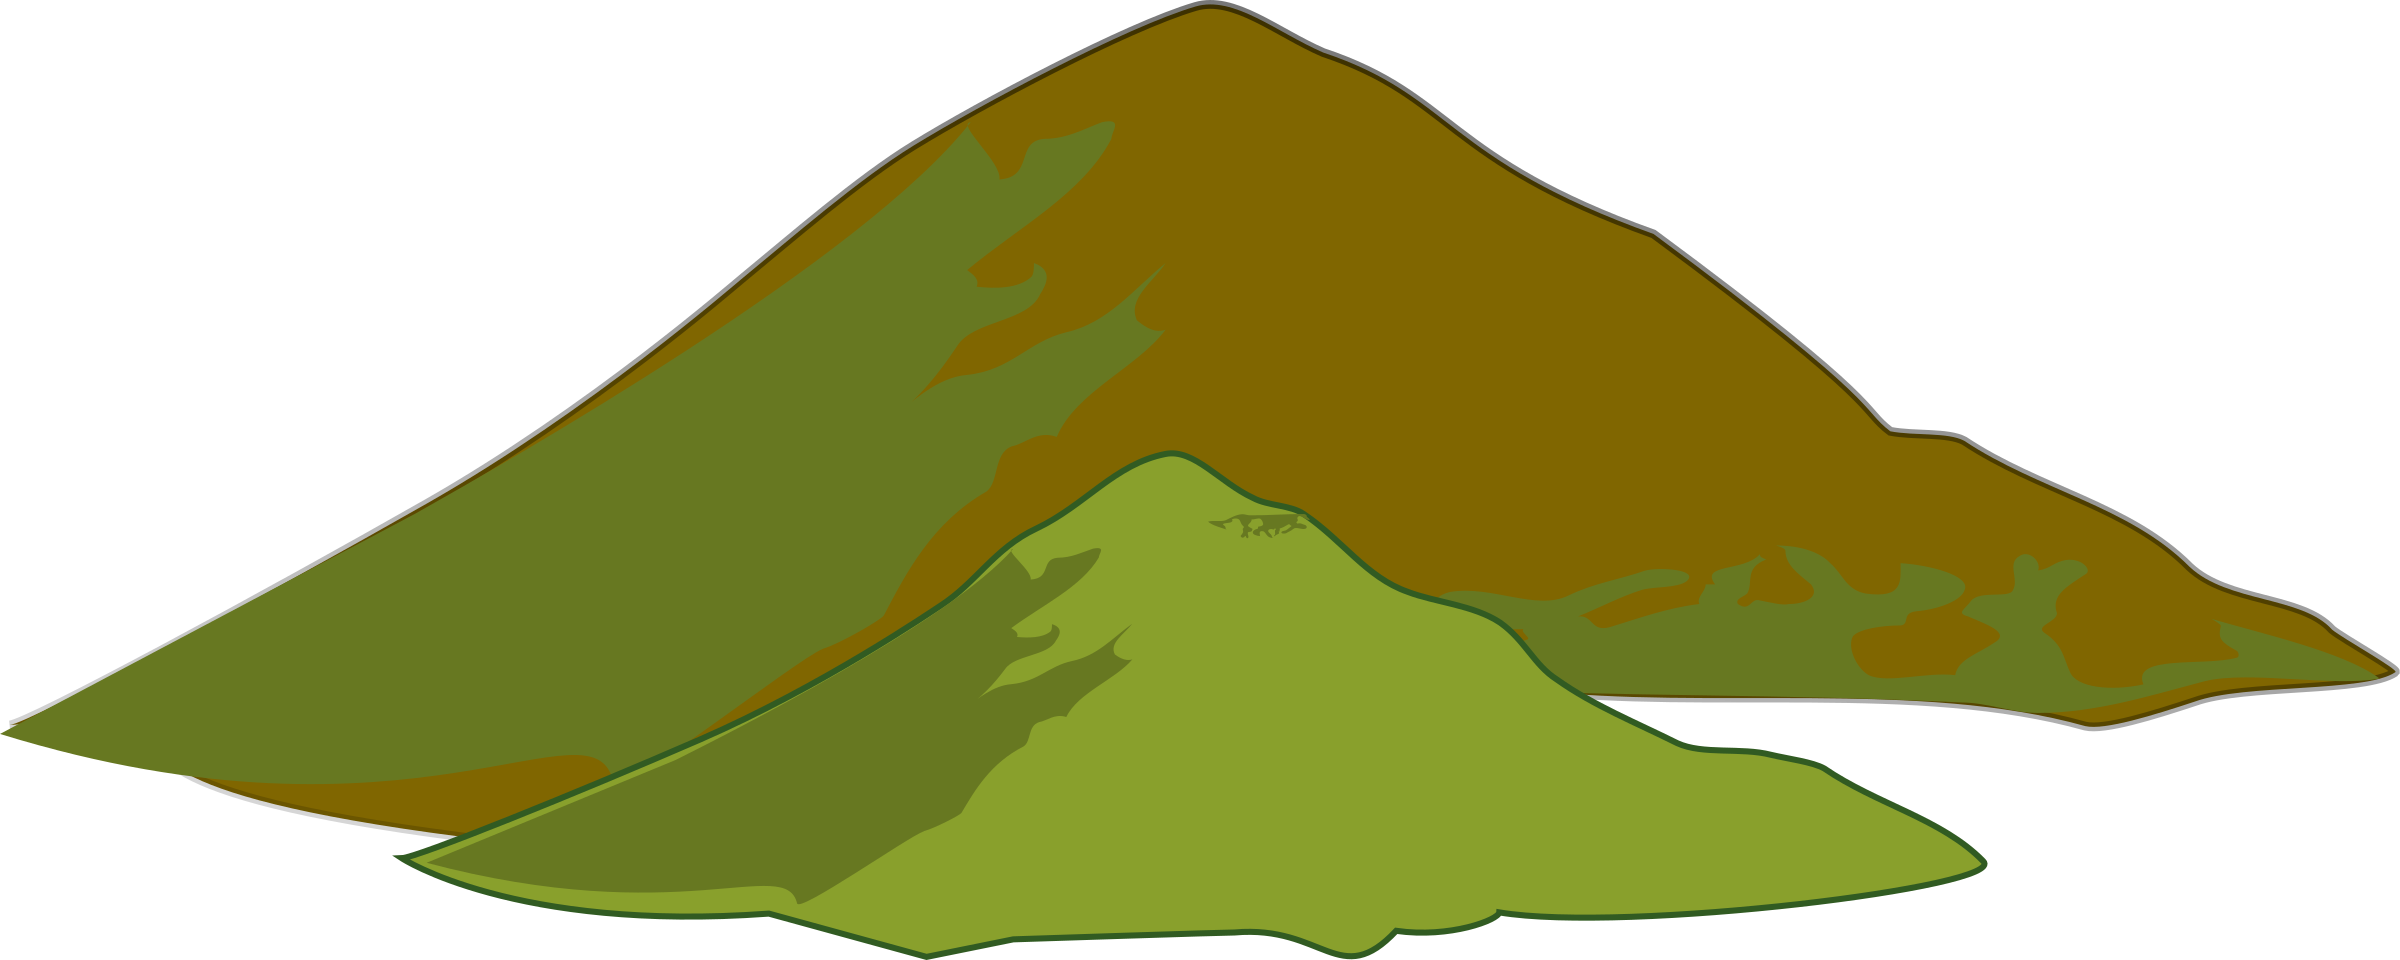 clipart mountain hill